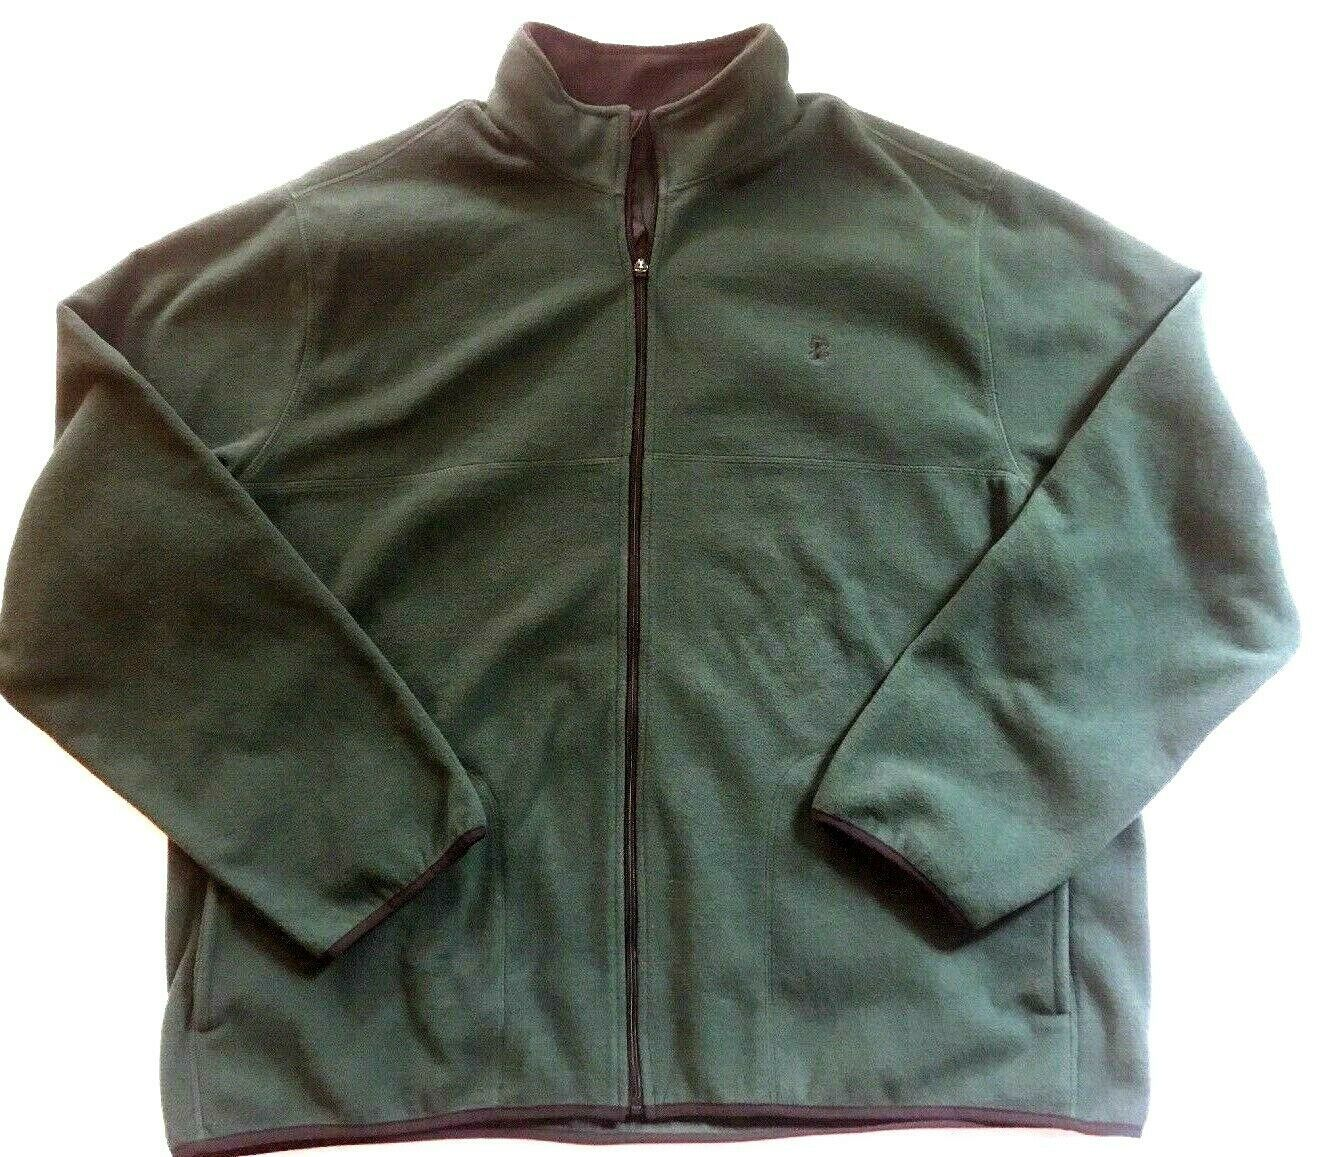 IZOD Full-Zip Polar Fleece Jacket Big & Tall Hunter Green w/ Black Trim 2XLT $70